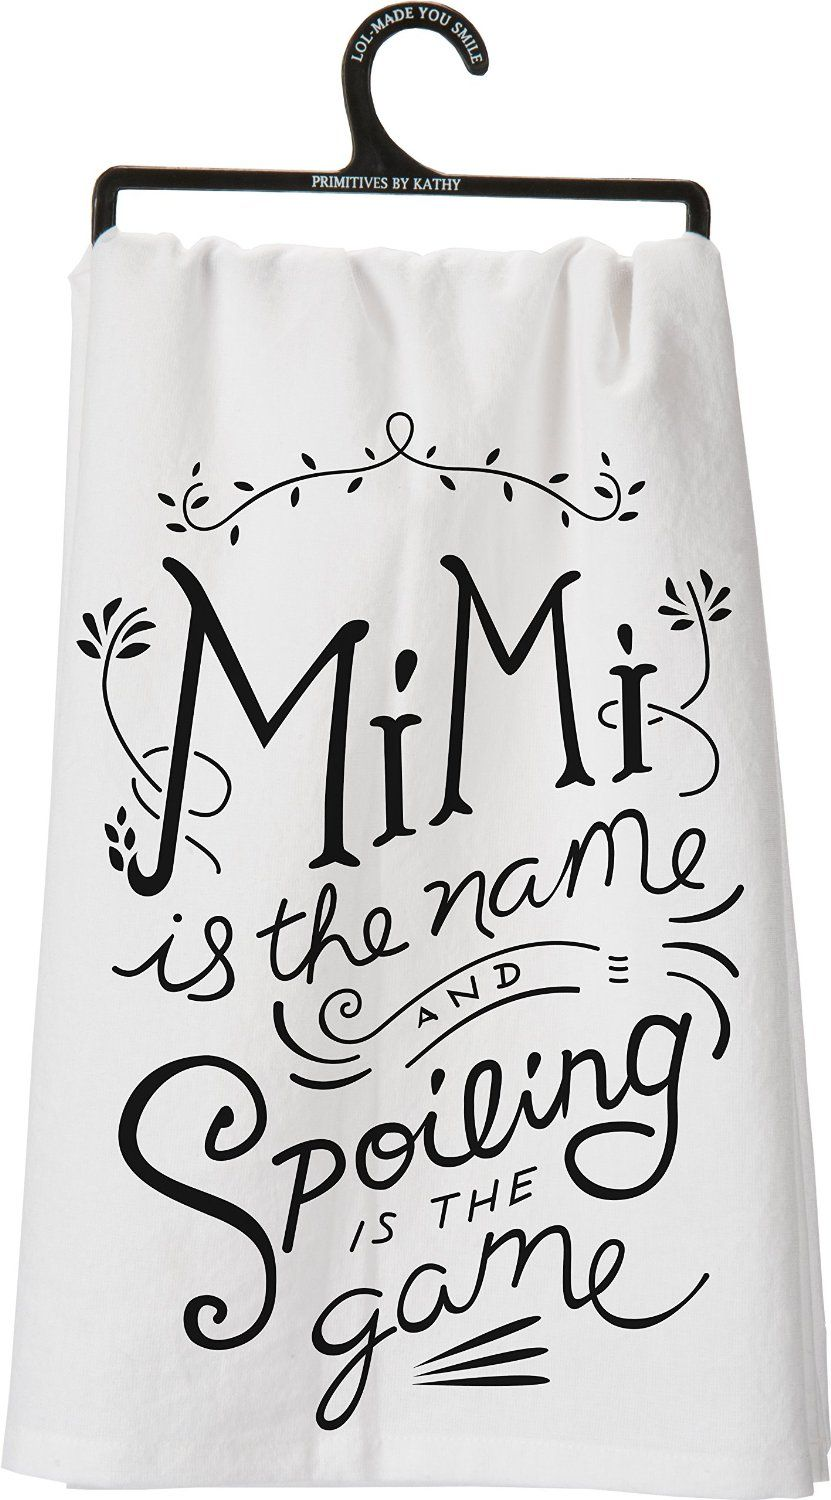 Mimi is the name and Spoiling is the game <3 #giftsforgranparents ...